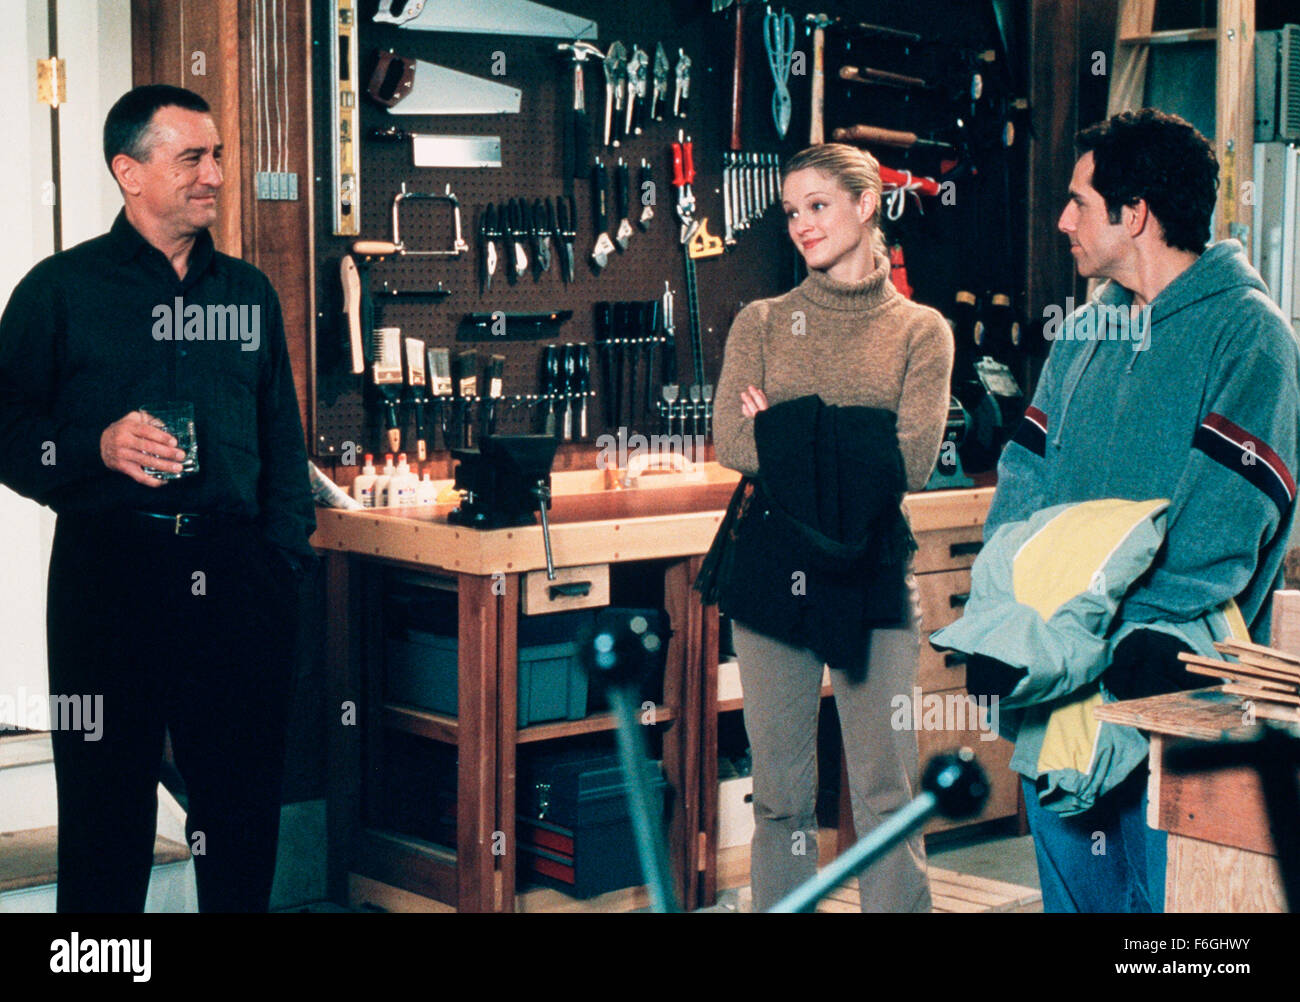 Mar 01, 2000; Hollywood, CA, USA; ROBERT DE NIRO, TERI POLO and BEN STILLER star as Jack Byrnes, Pam Byrnes and - Stock Image